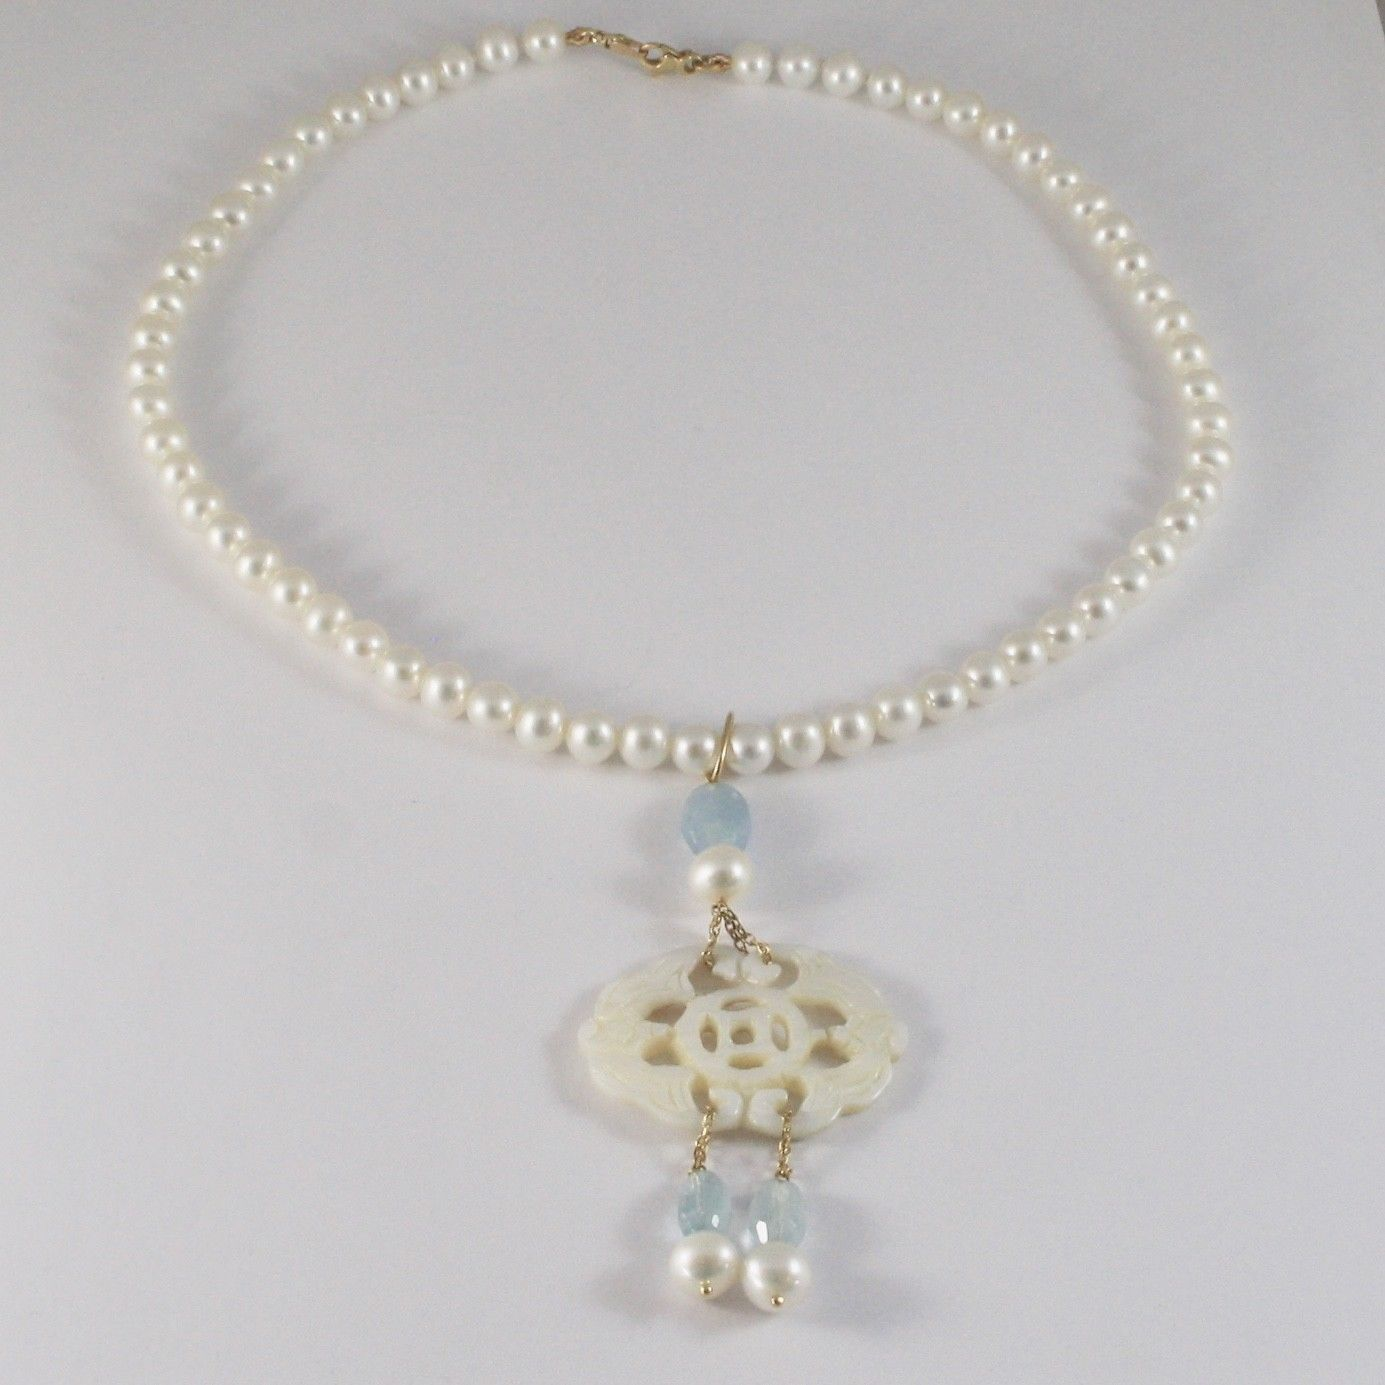 NECKLACE YELLOW GOLD 18KT WITH WHITE PEARLS NACRE PERFORATED AQUAMARINE